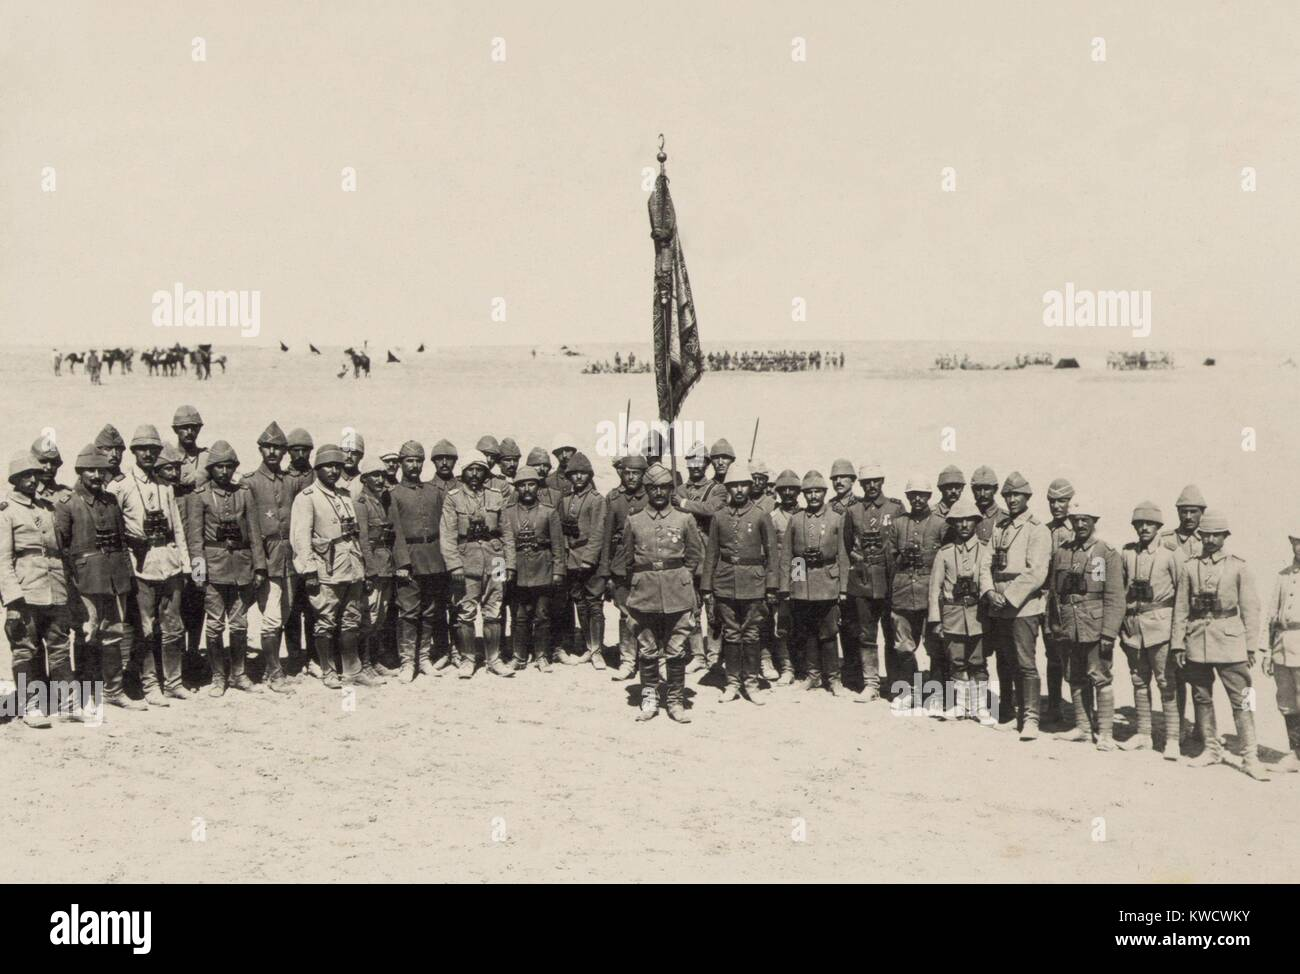 Victorious Ottoman officers of the First Battle of Gaza, March 1917. They repulsed the British Egyptian Expeditionary - Stock Image